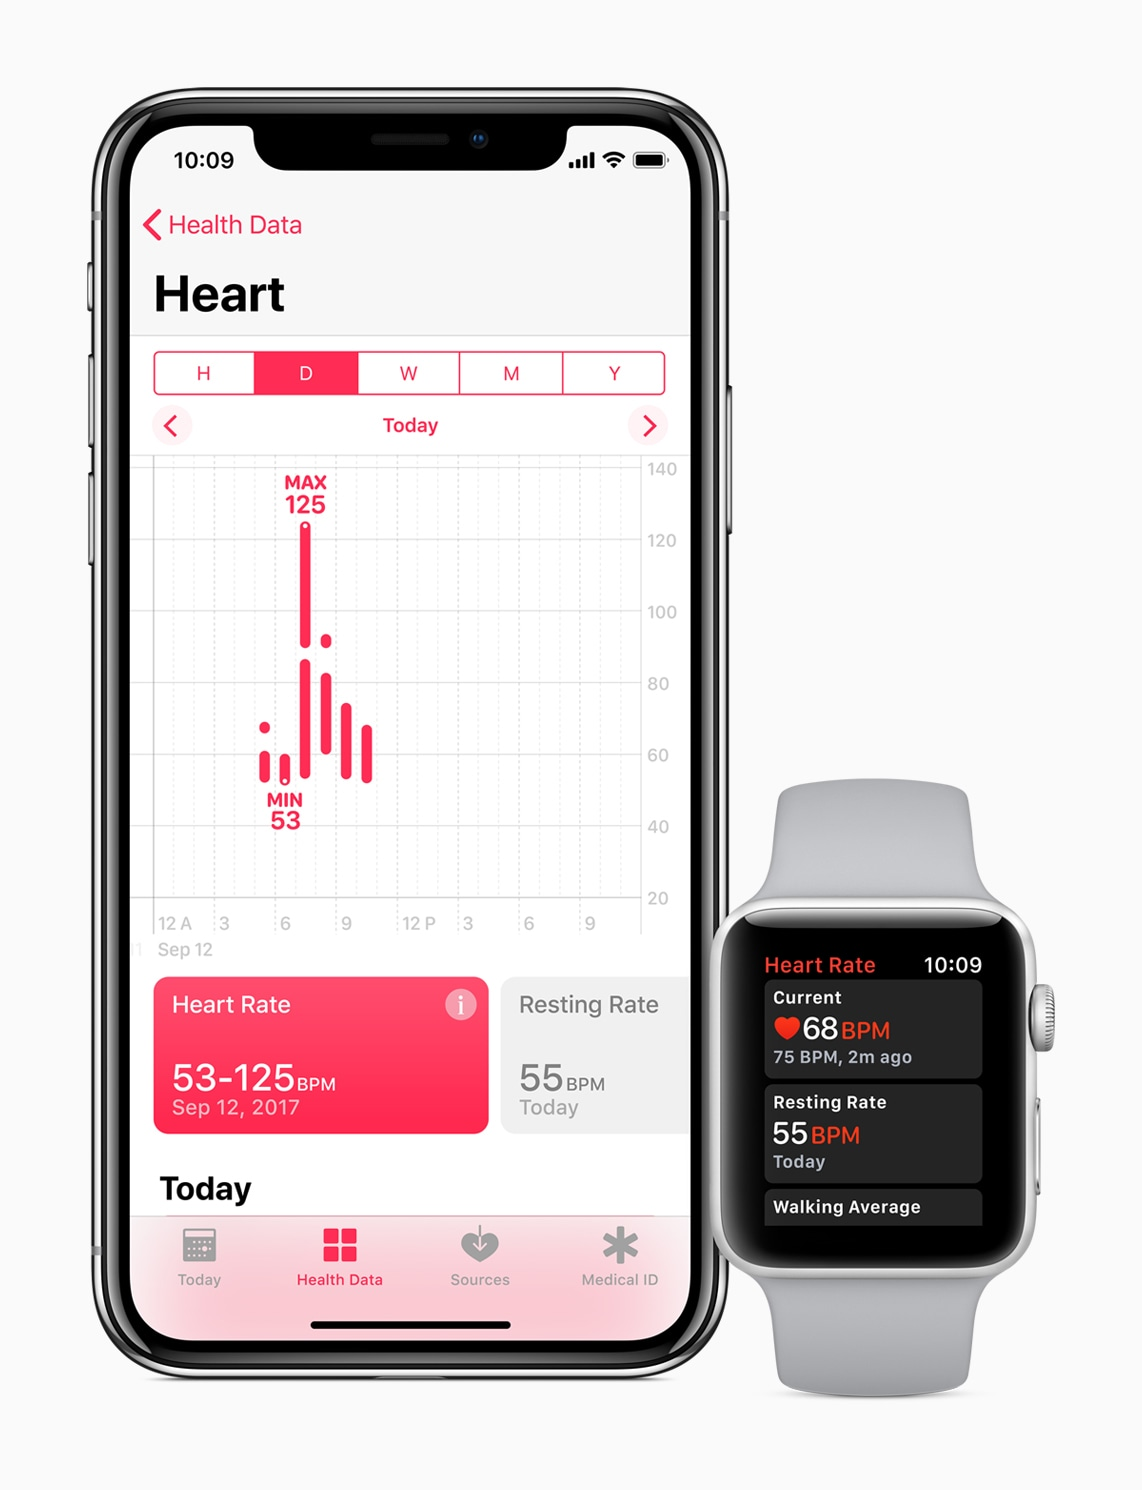 Medição de batimentos cardíacos com o Apple Watch Series 3 e iPhone X